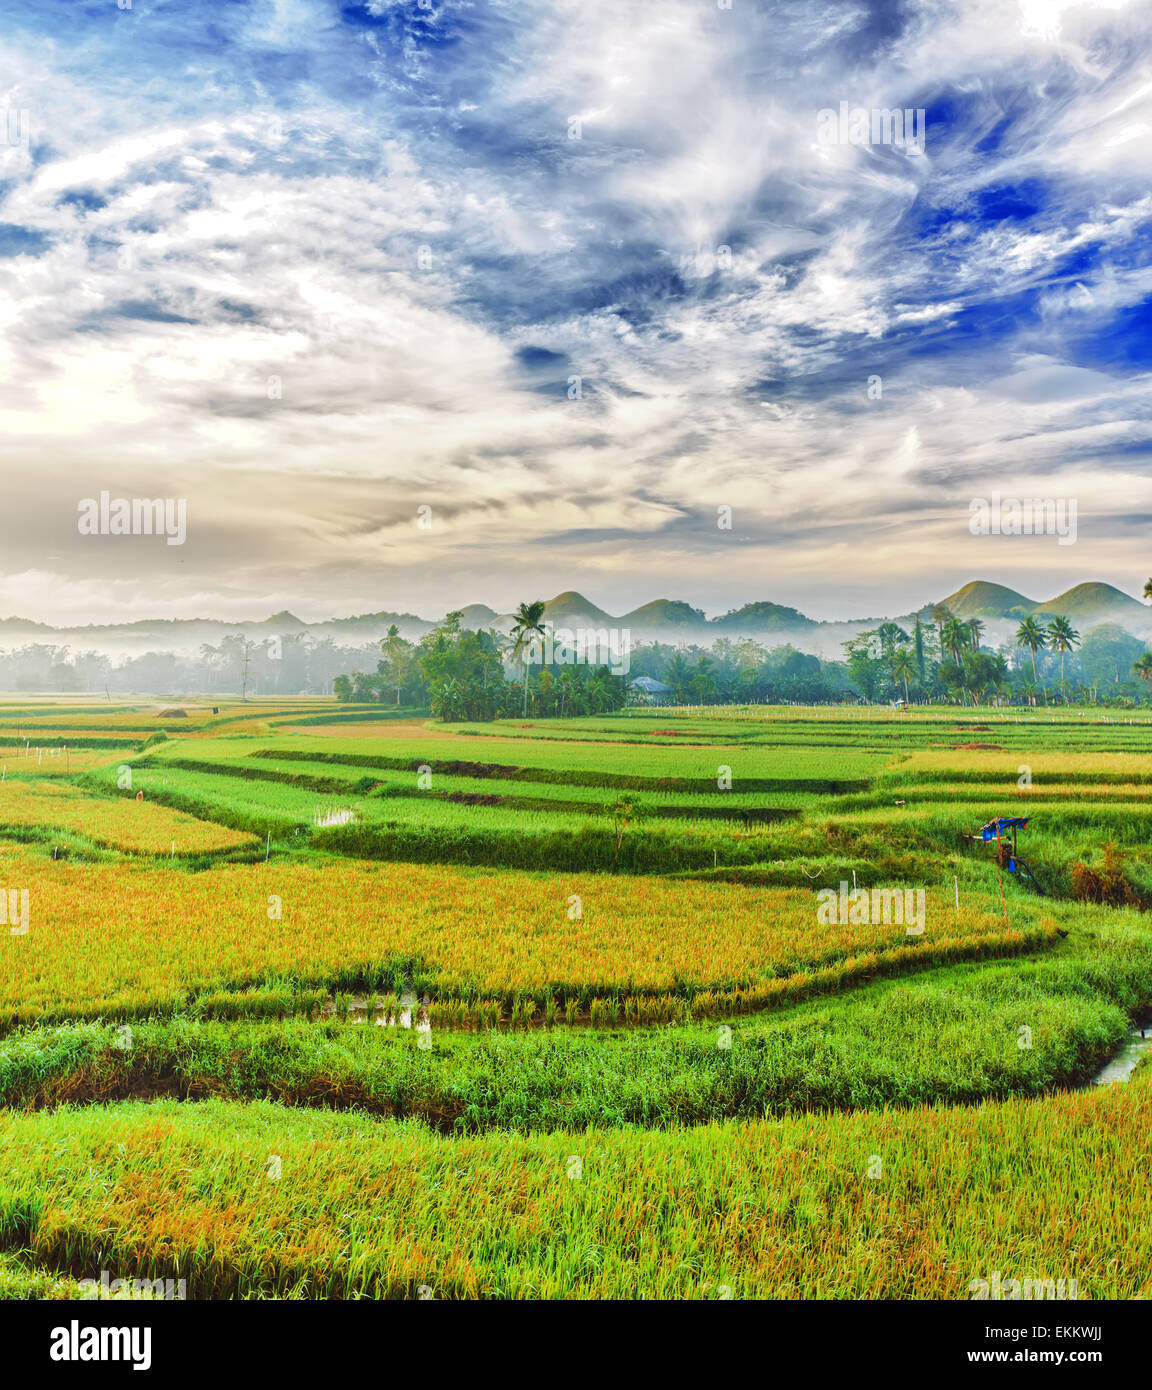 Panorama of the paddy rice field. Philippines - Stock Image